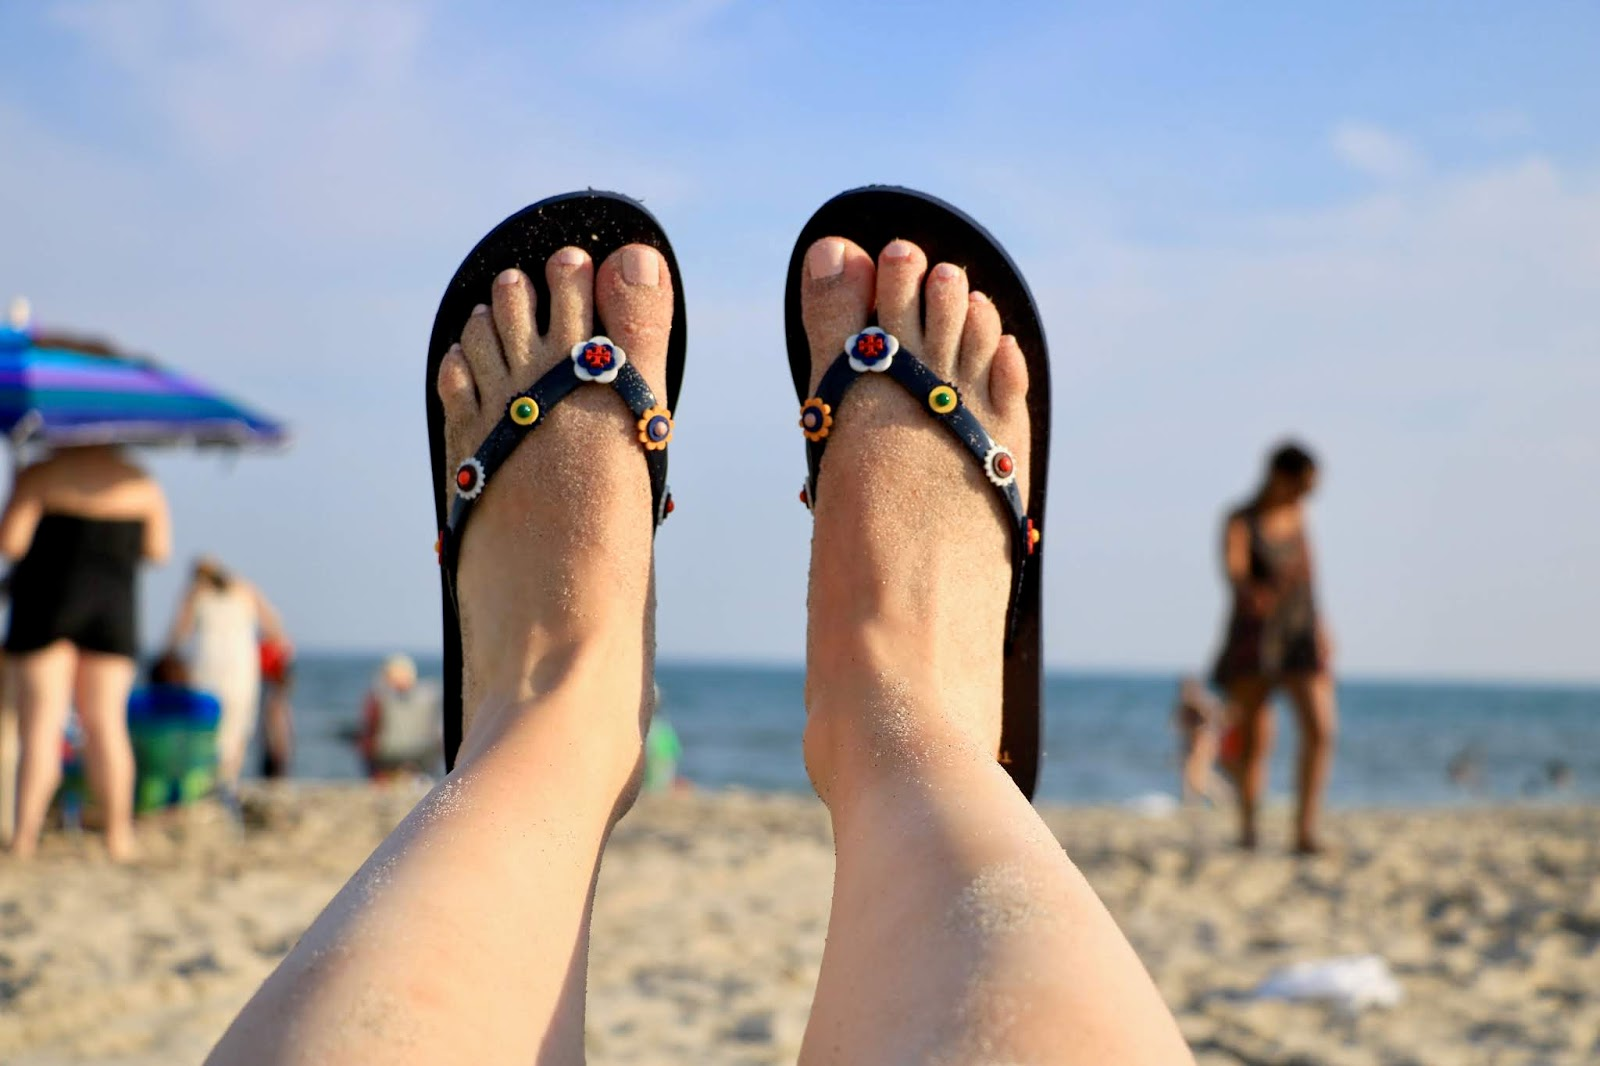 Nyc fashion blogger Kathleen Harper wearing Tory Burch rubber flip flops